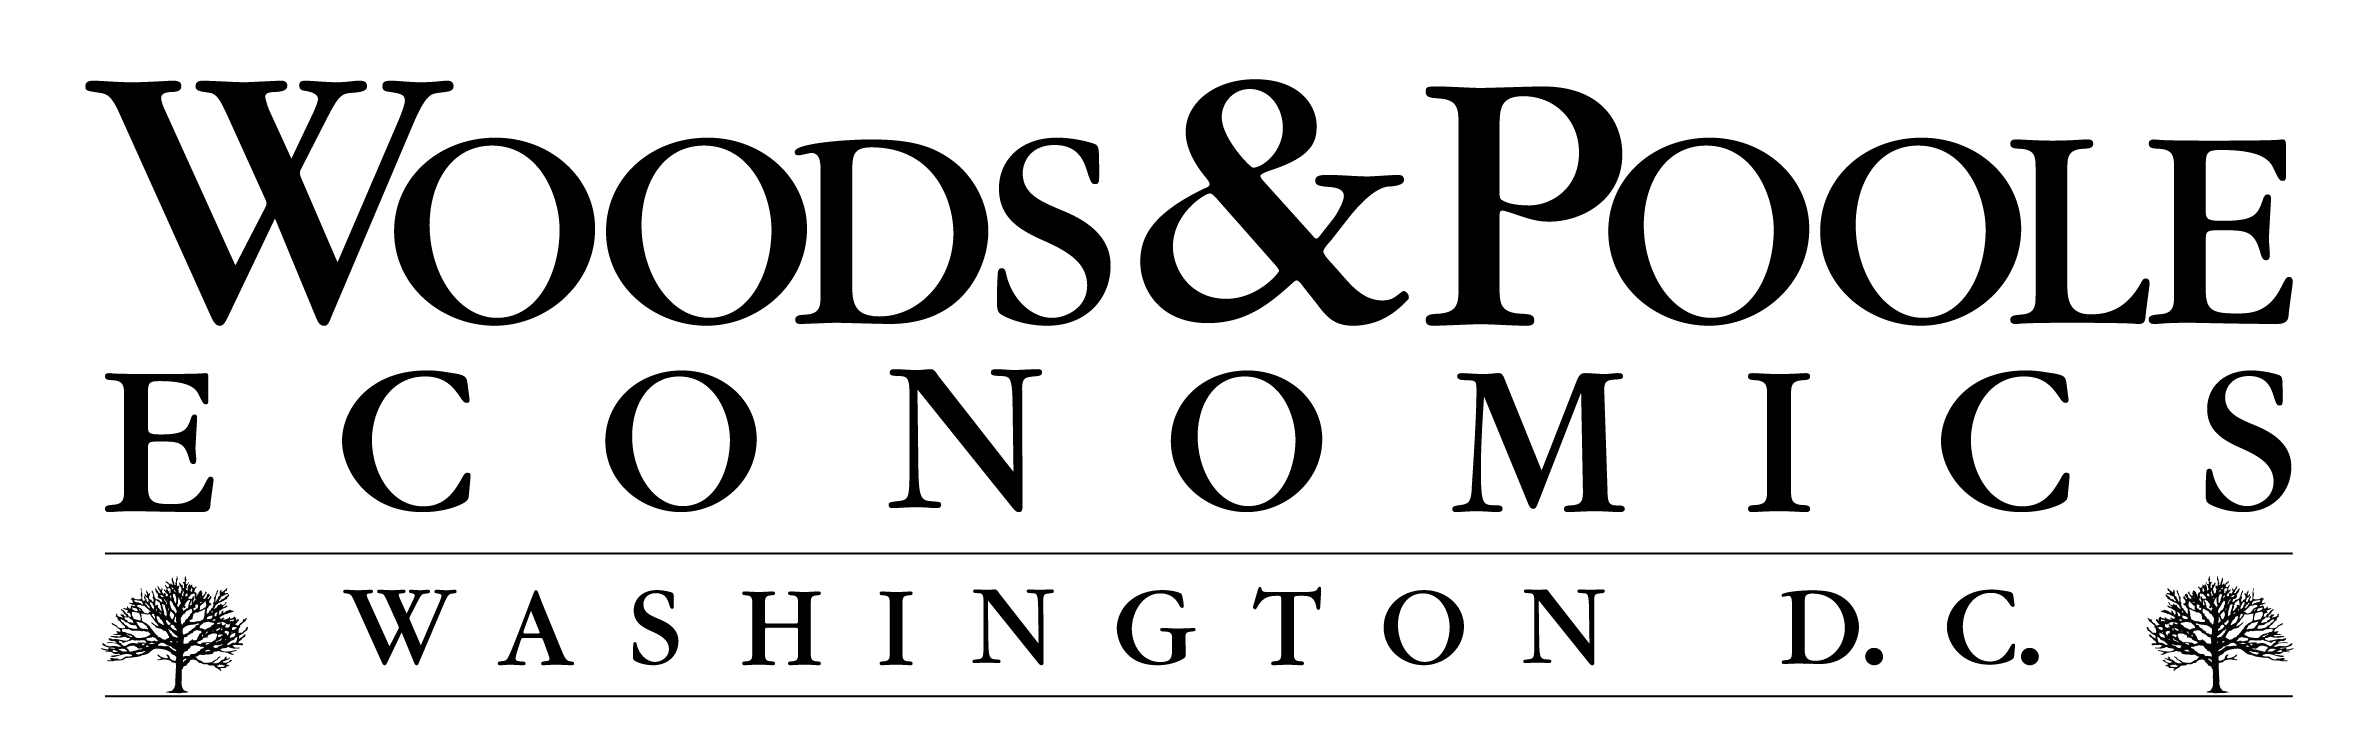 SPRINGFIELD IL (FIPS 44100) | Woods & Poole Economics, Inc